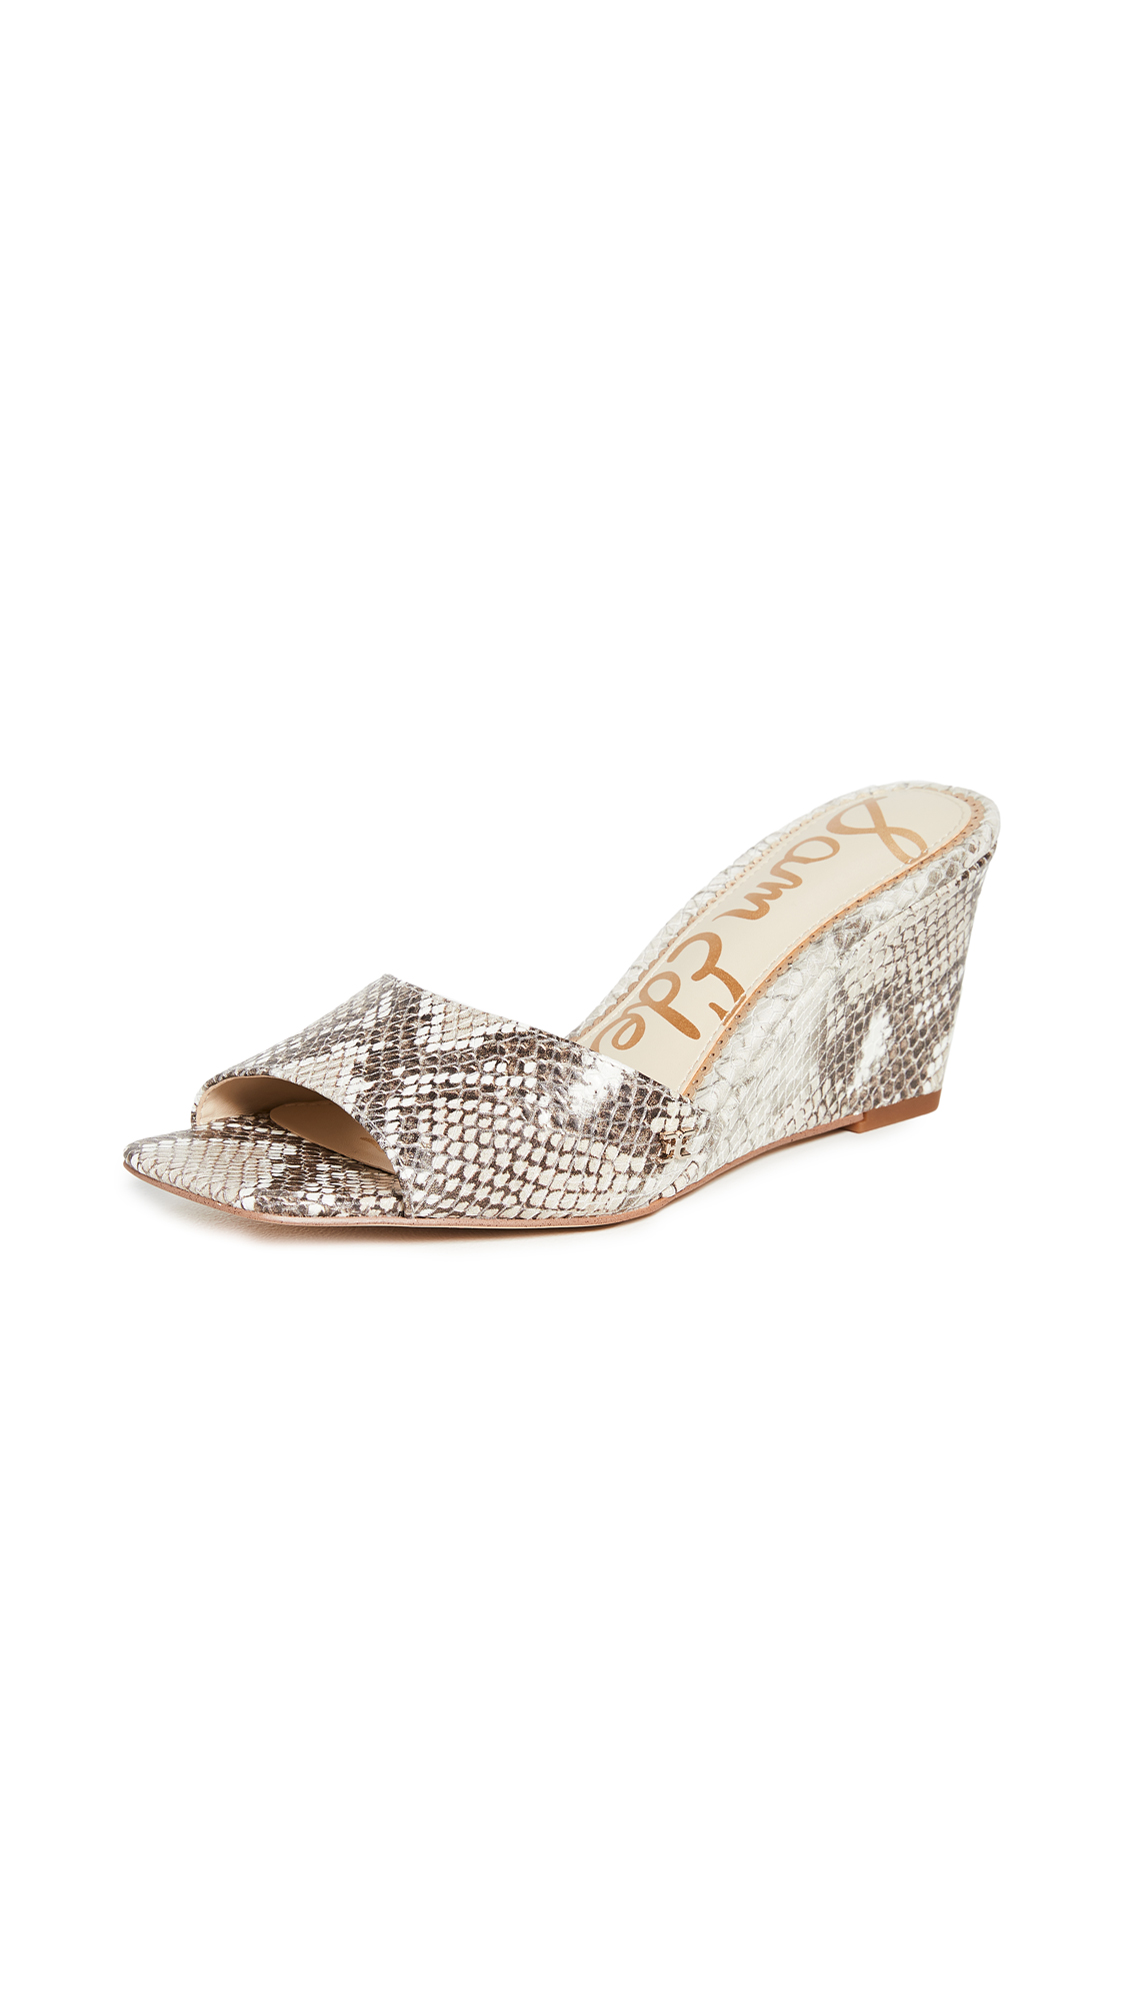 Sam Edelman Tesma Slides - 45% Off Sale